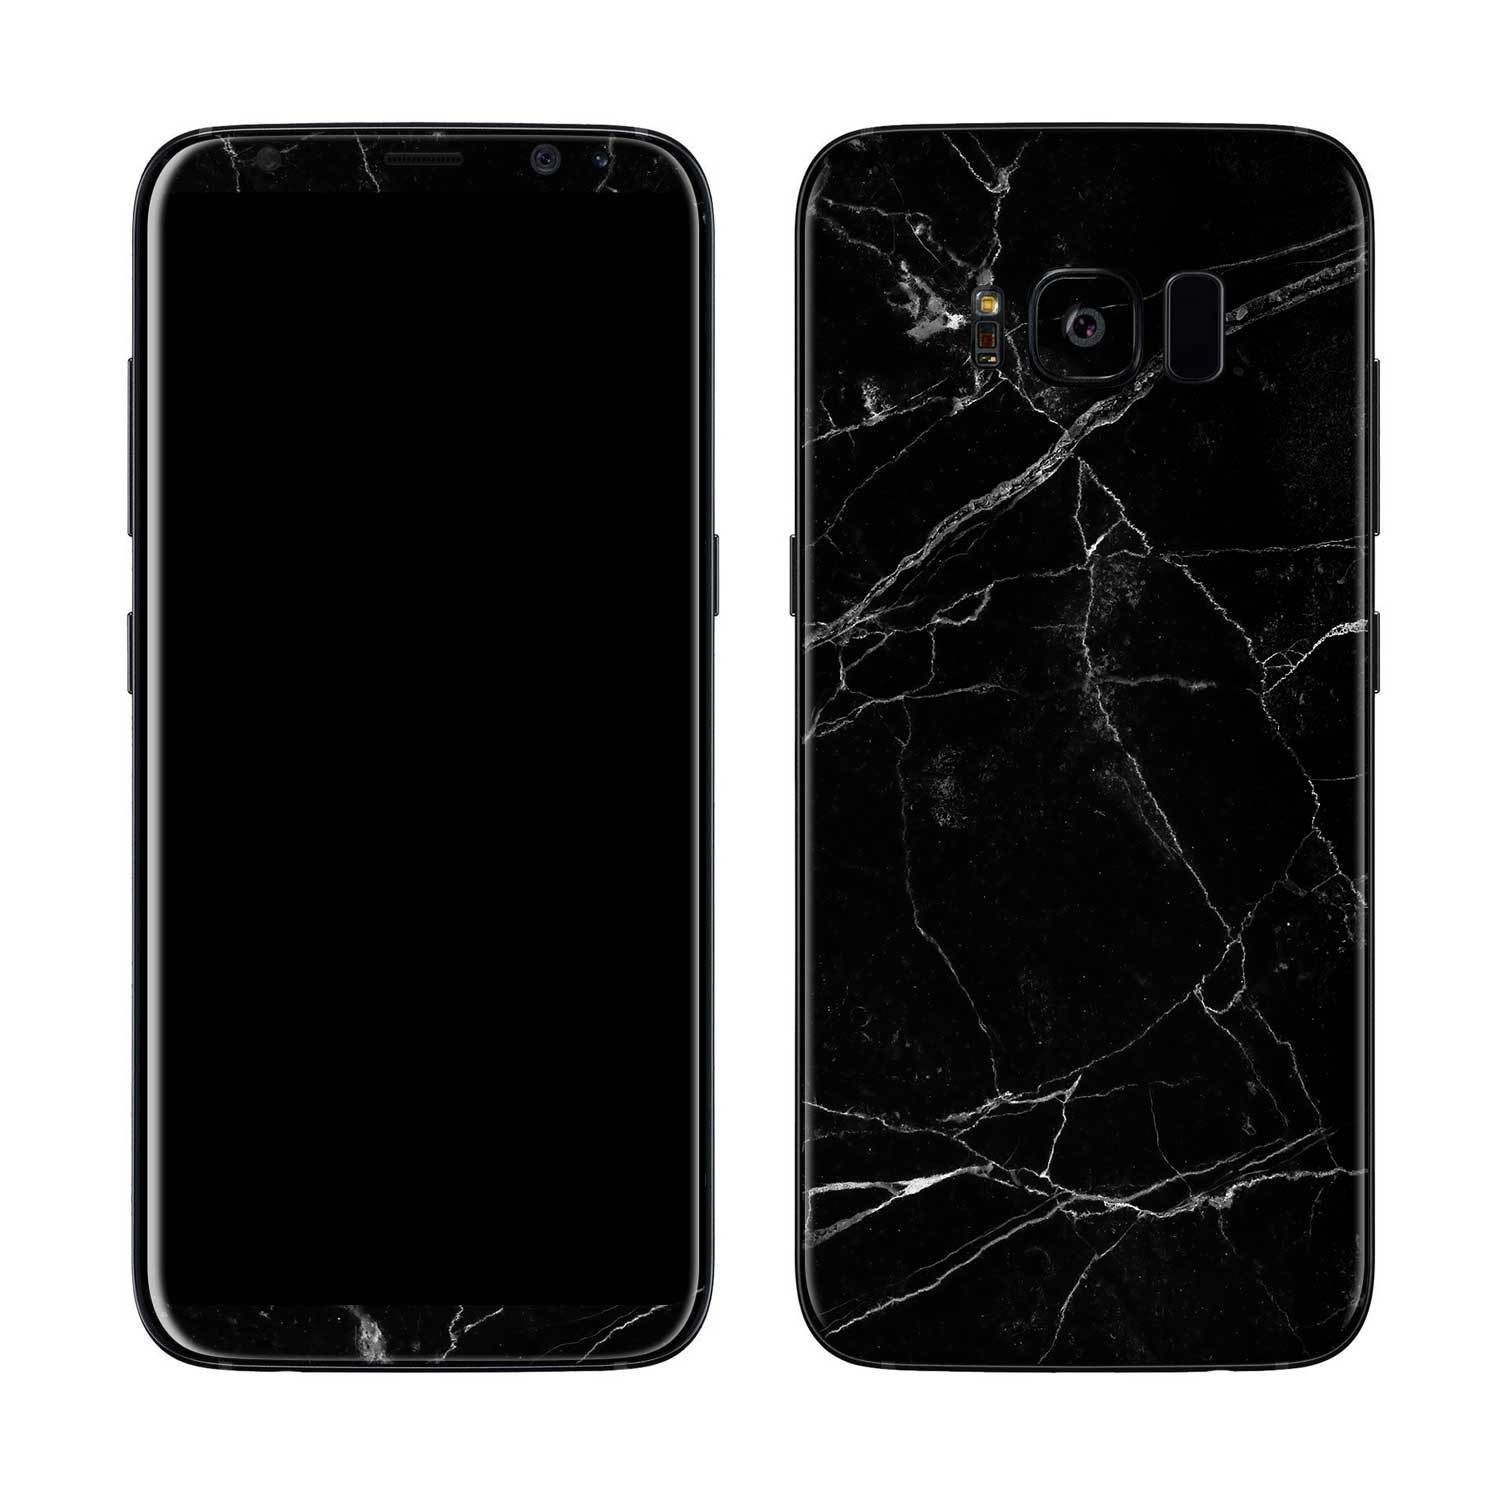 Black Marble Galaxy S8 Plus Skin + Case